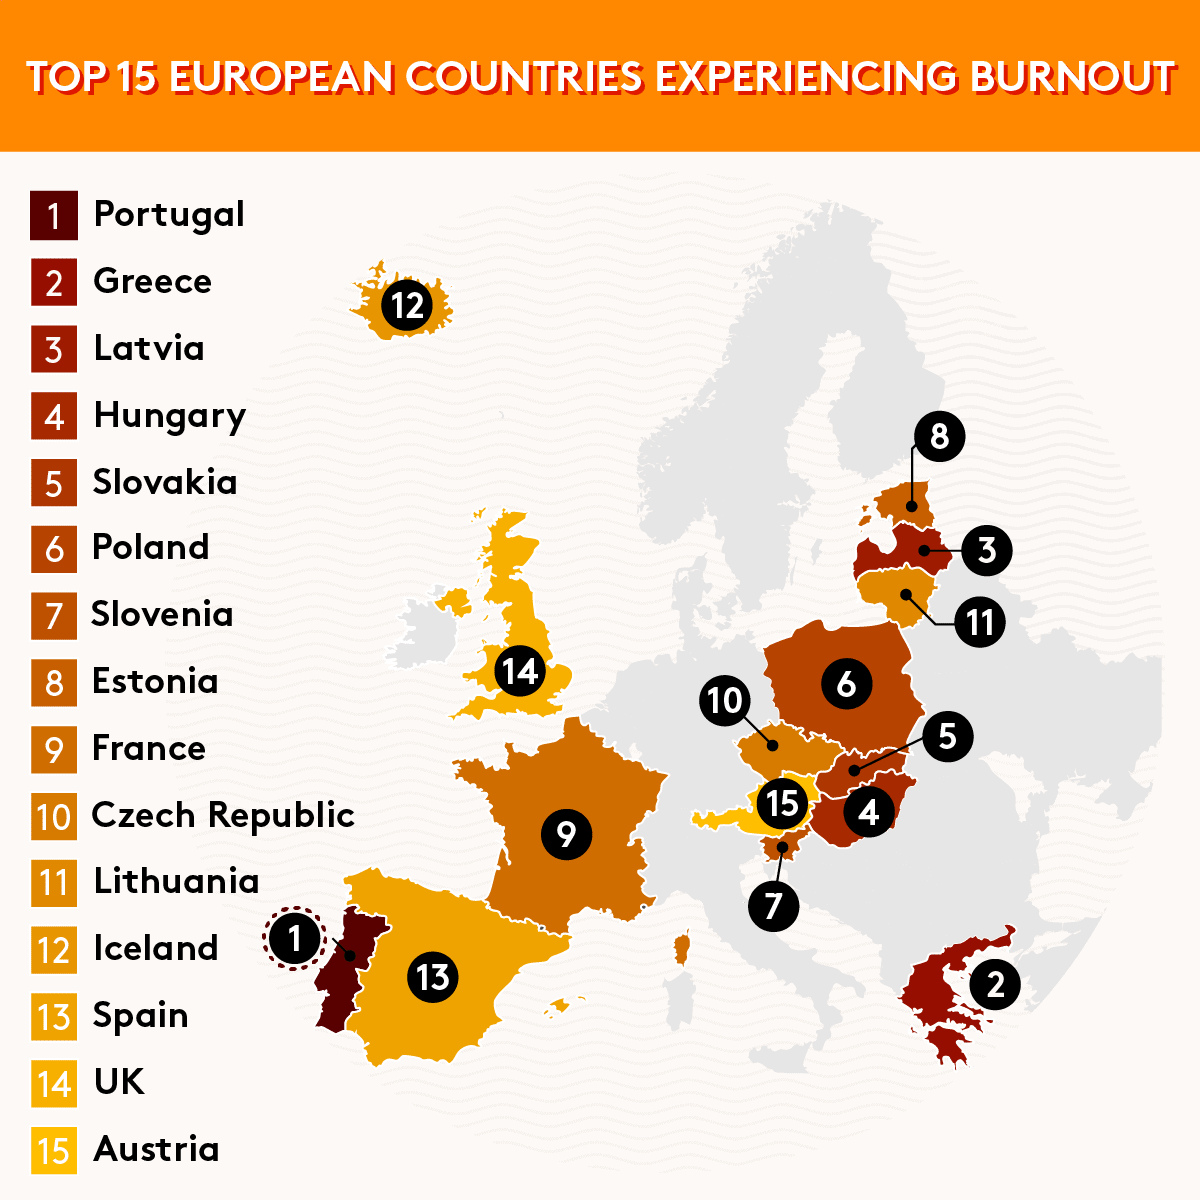 Top 15 Countries Experiencing Burnout